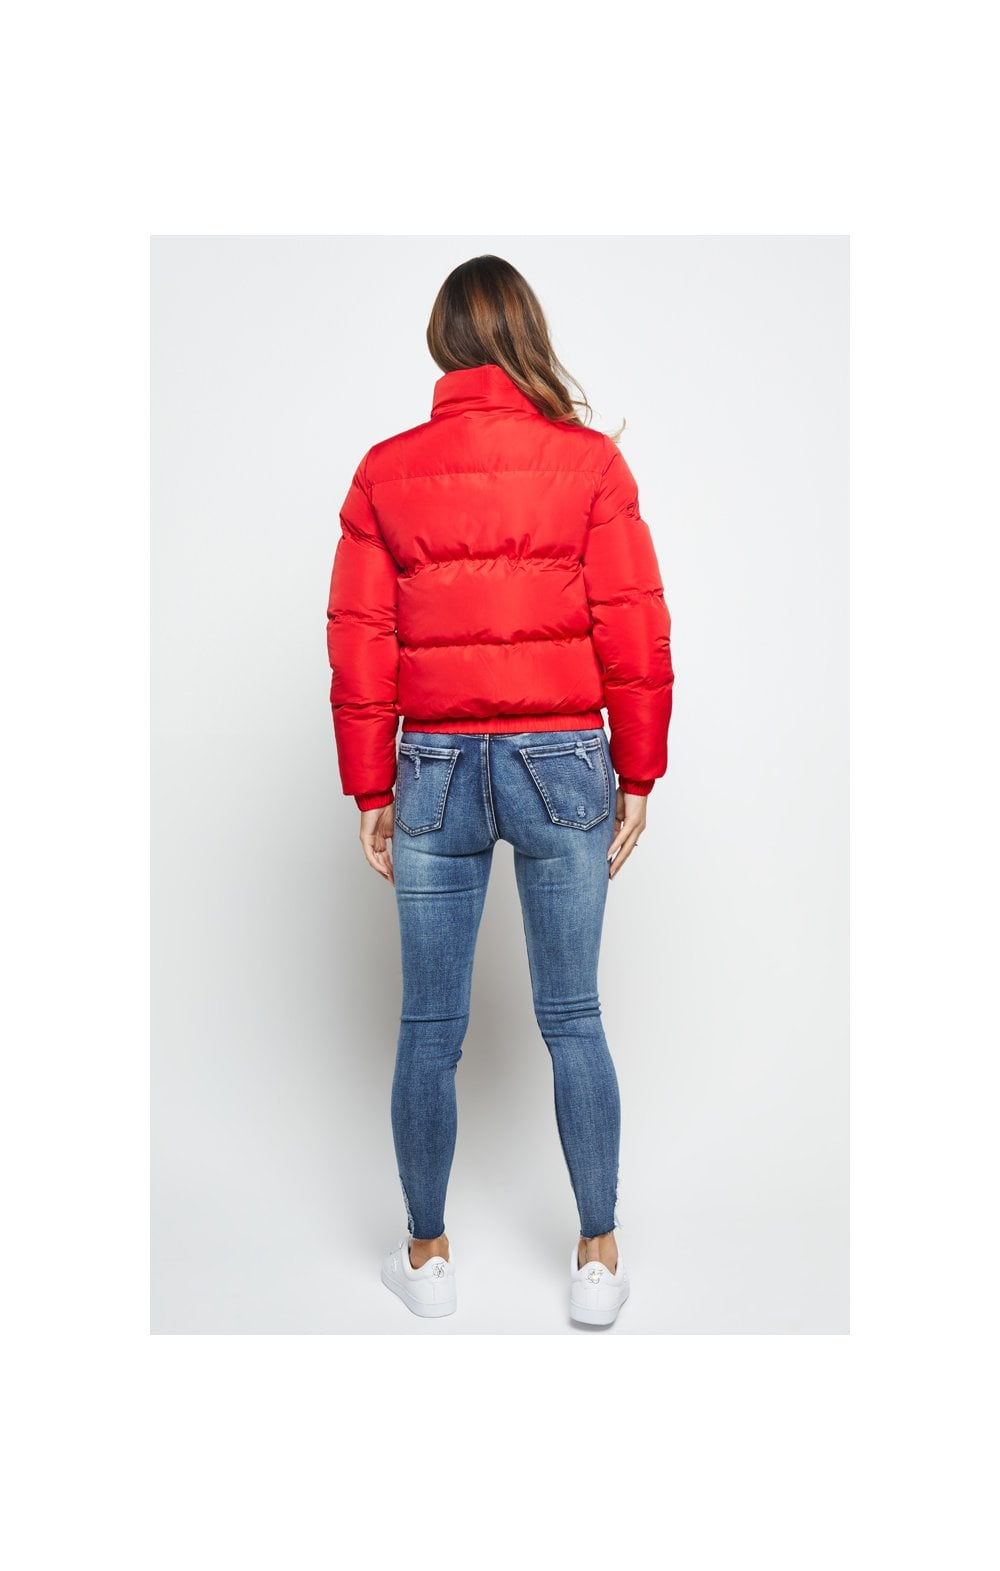 SikSilk Padded Crop Jacket - Red (5)